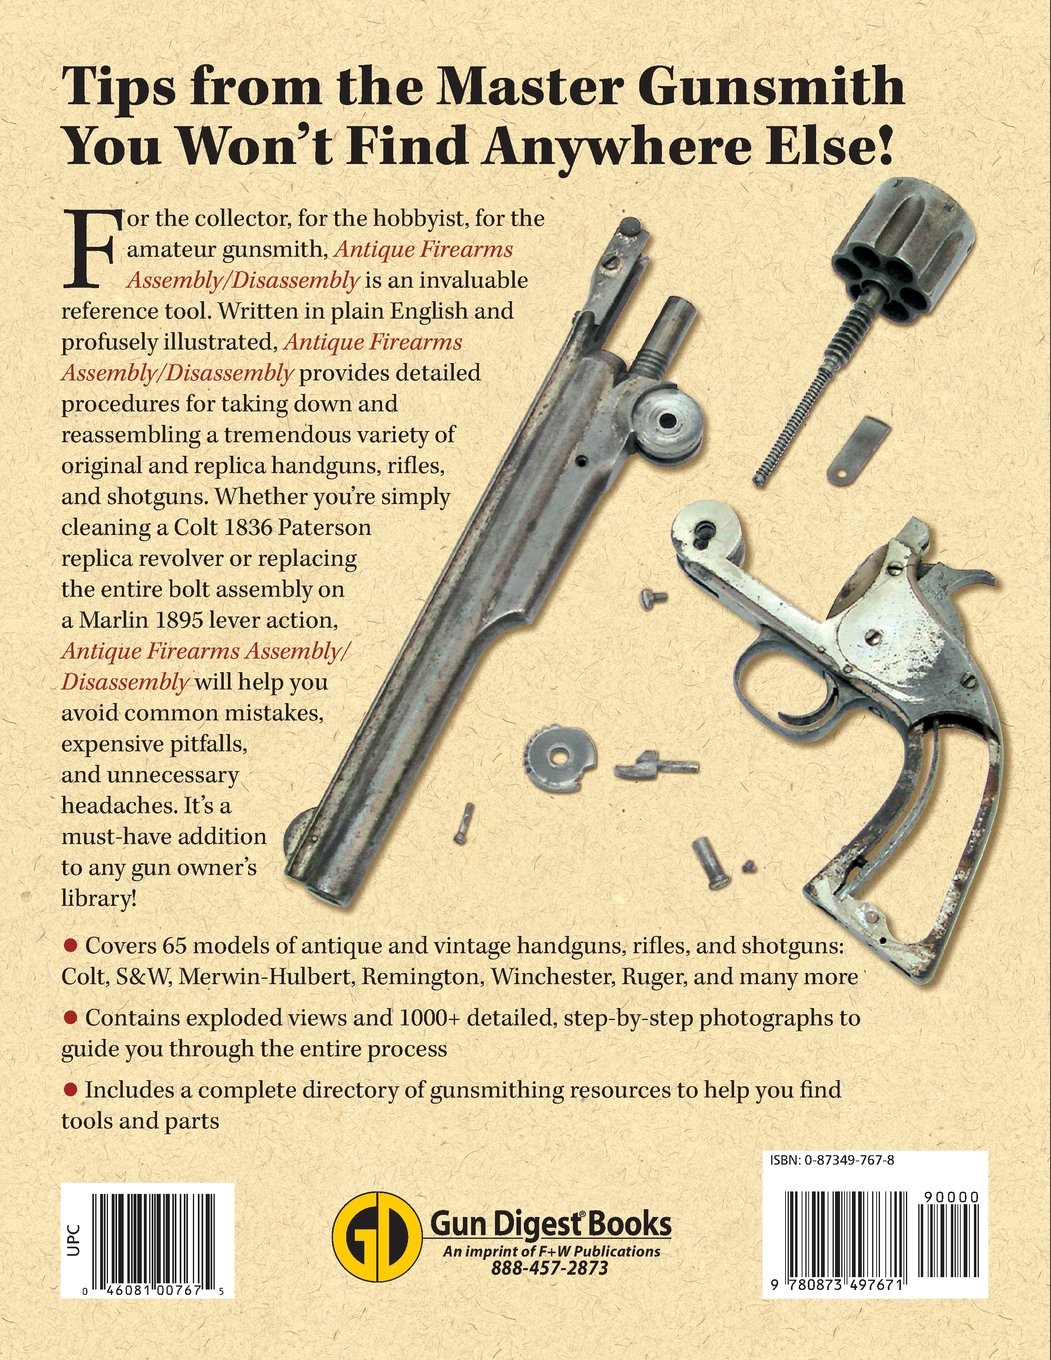 Amazon.com: Antique Firearms Assembly/Disassembly: The ...